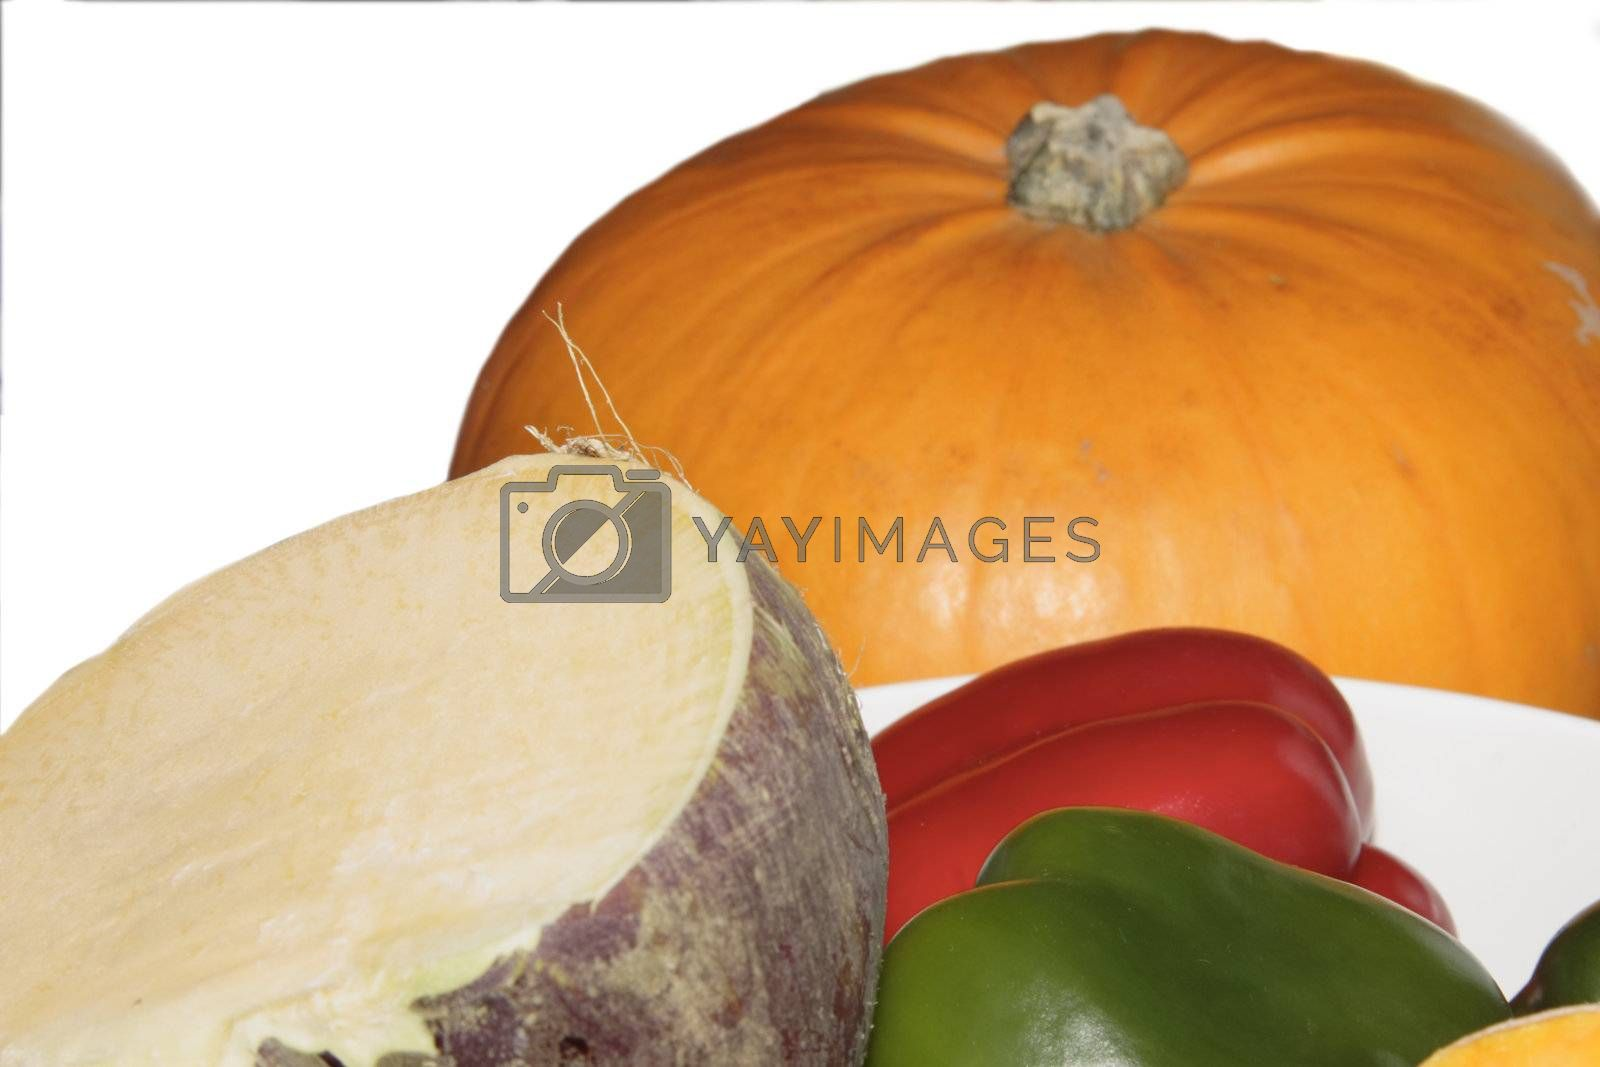 pumpkin swede and peppers against a white background